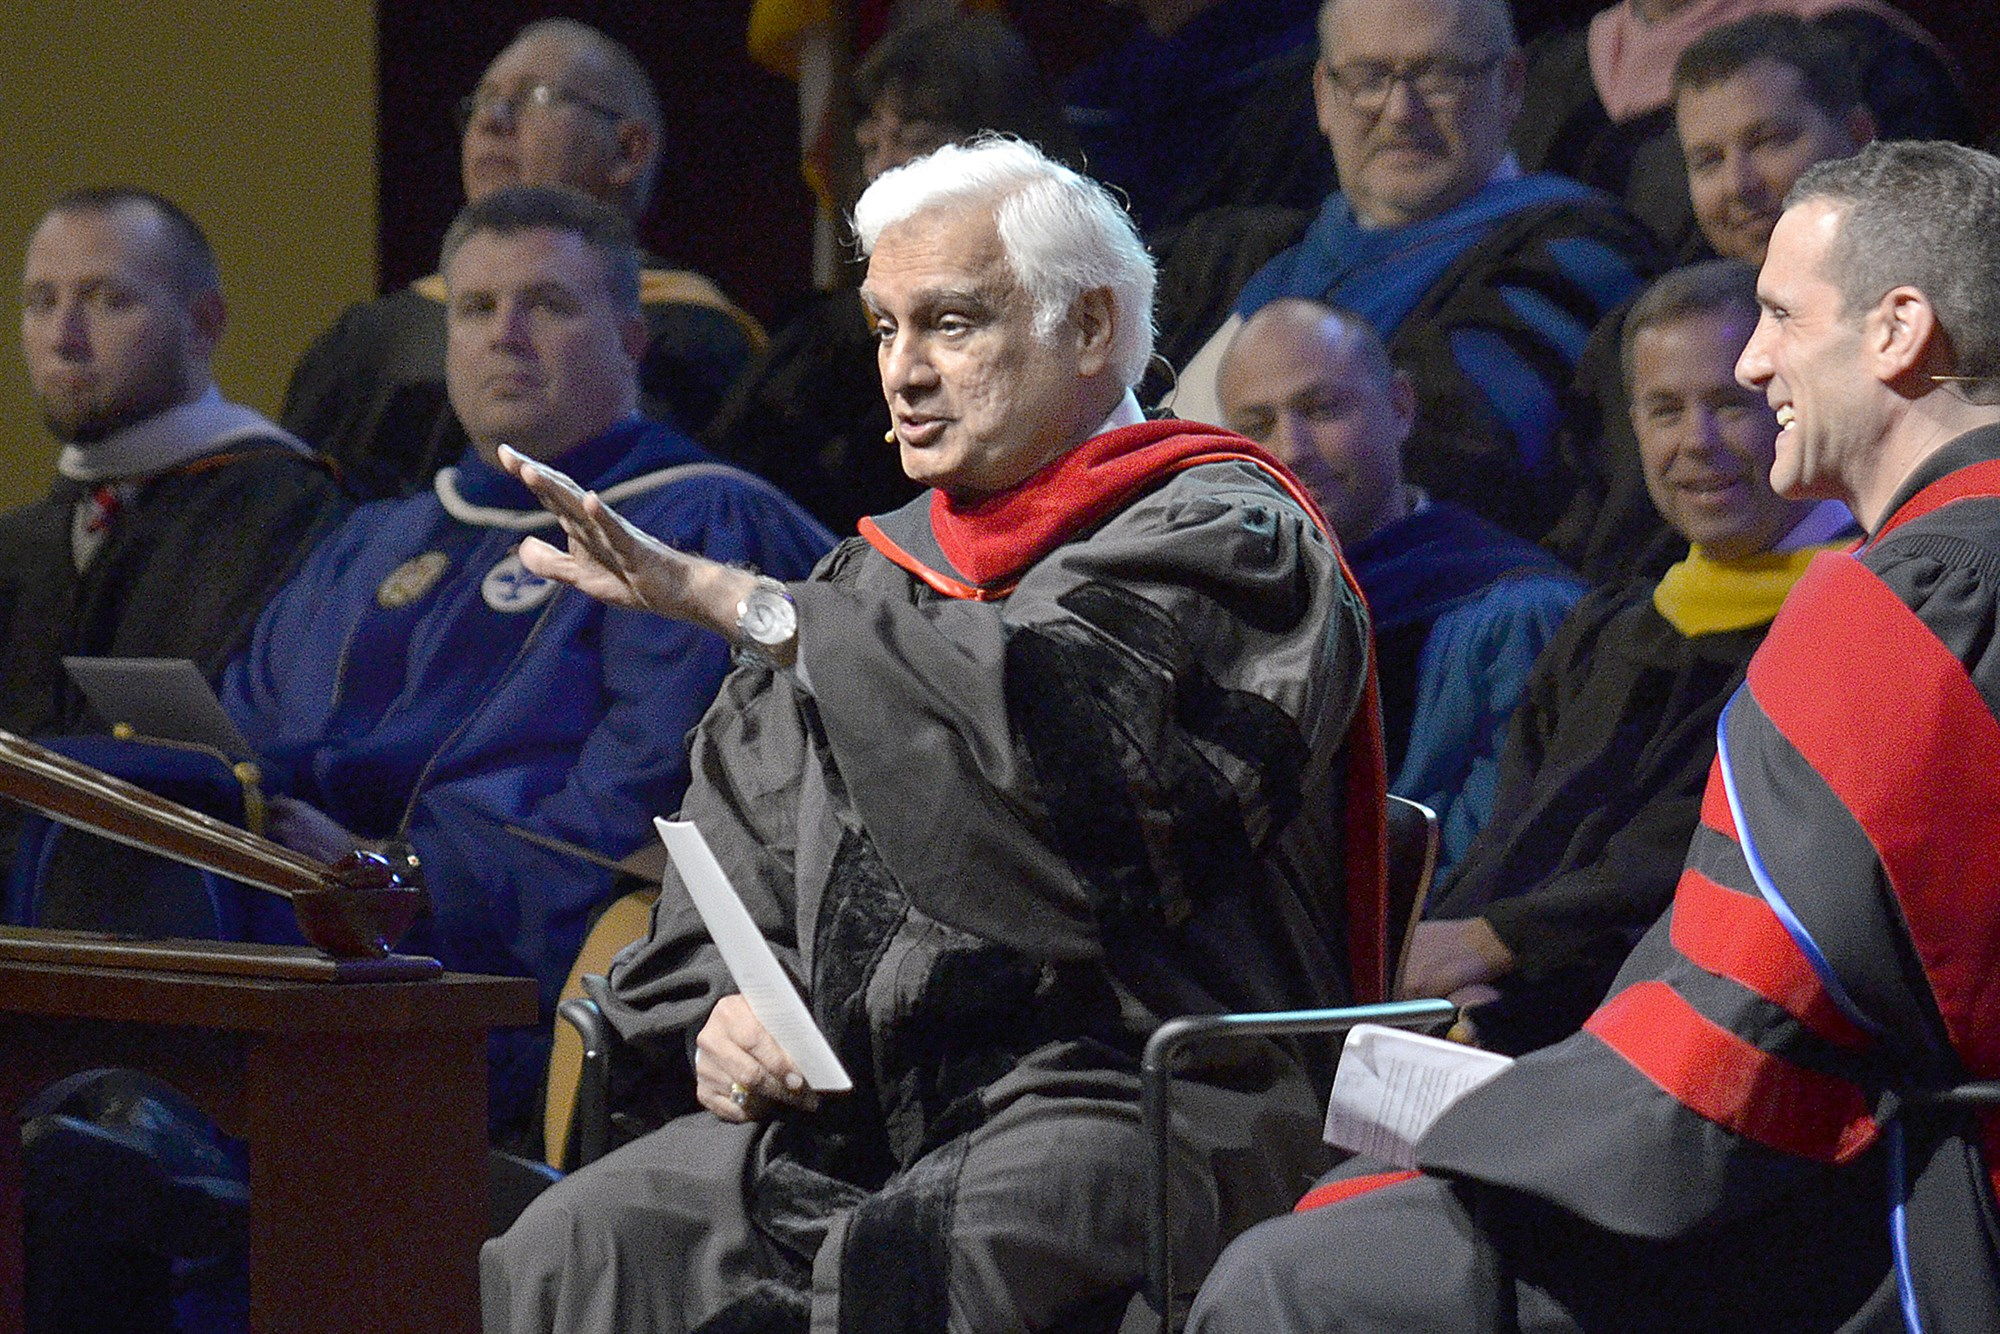 Christian evangelist Ravi Zacharias dies at 74